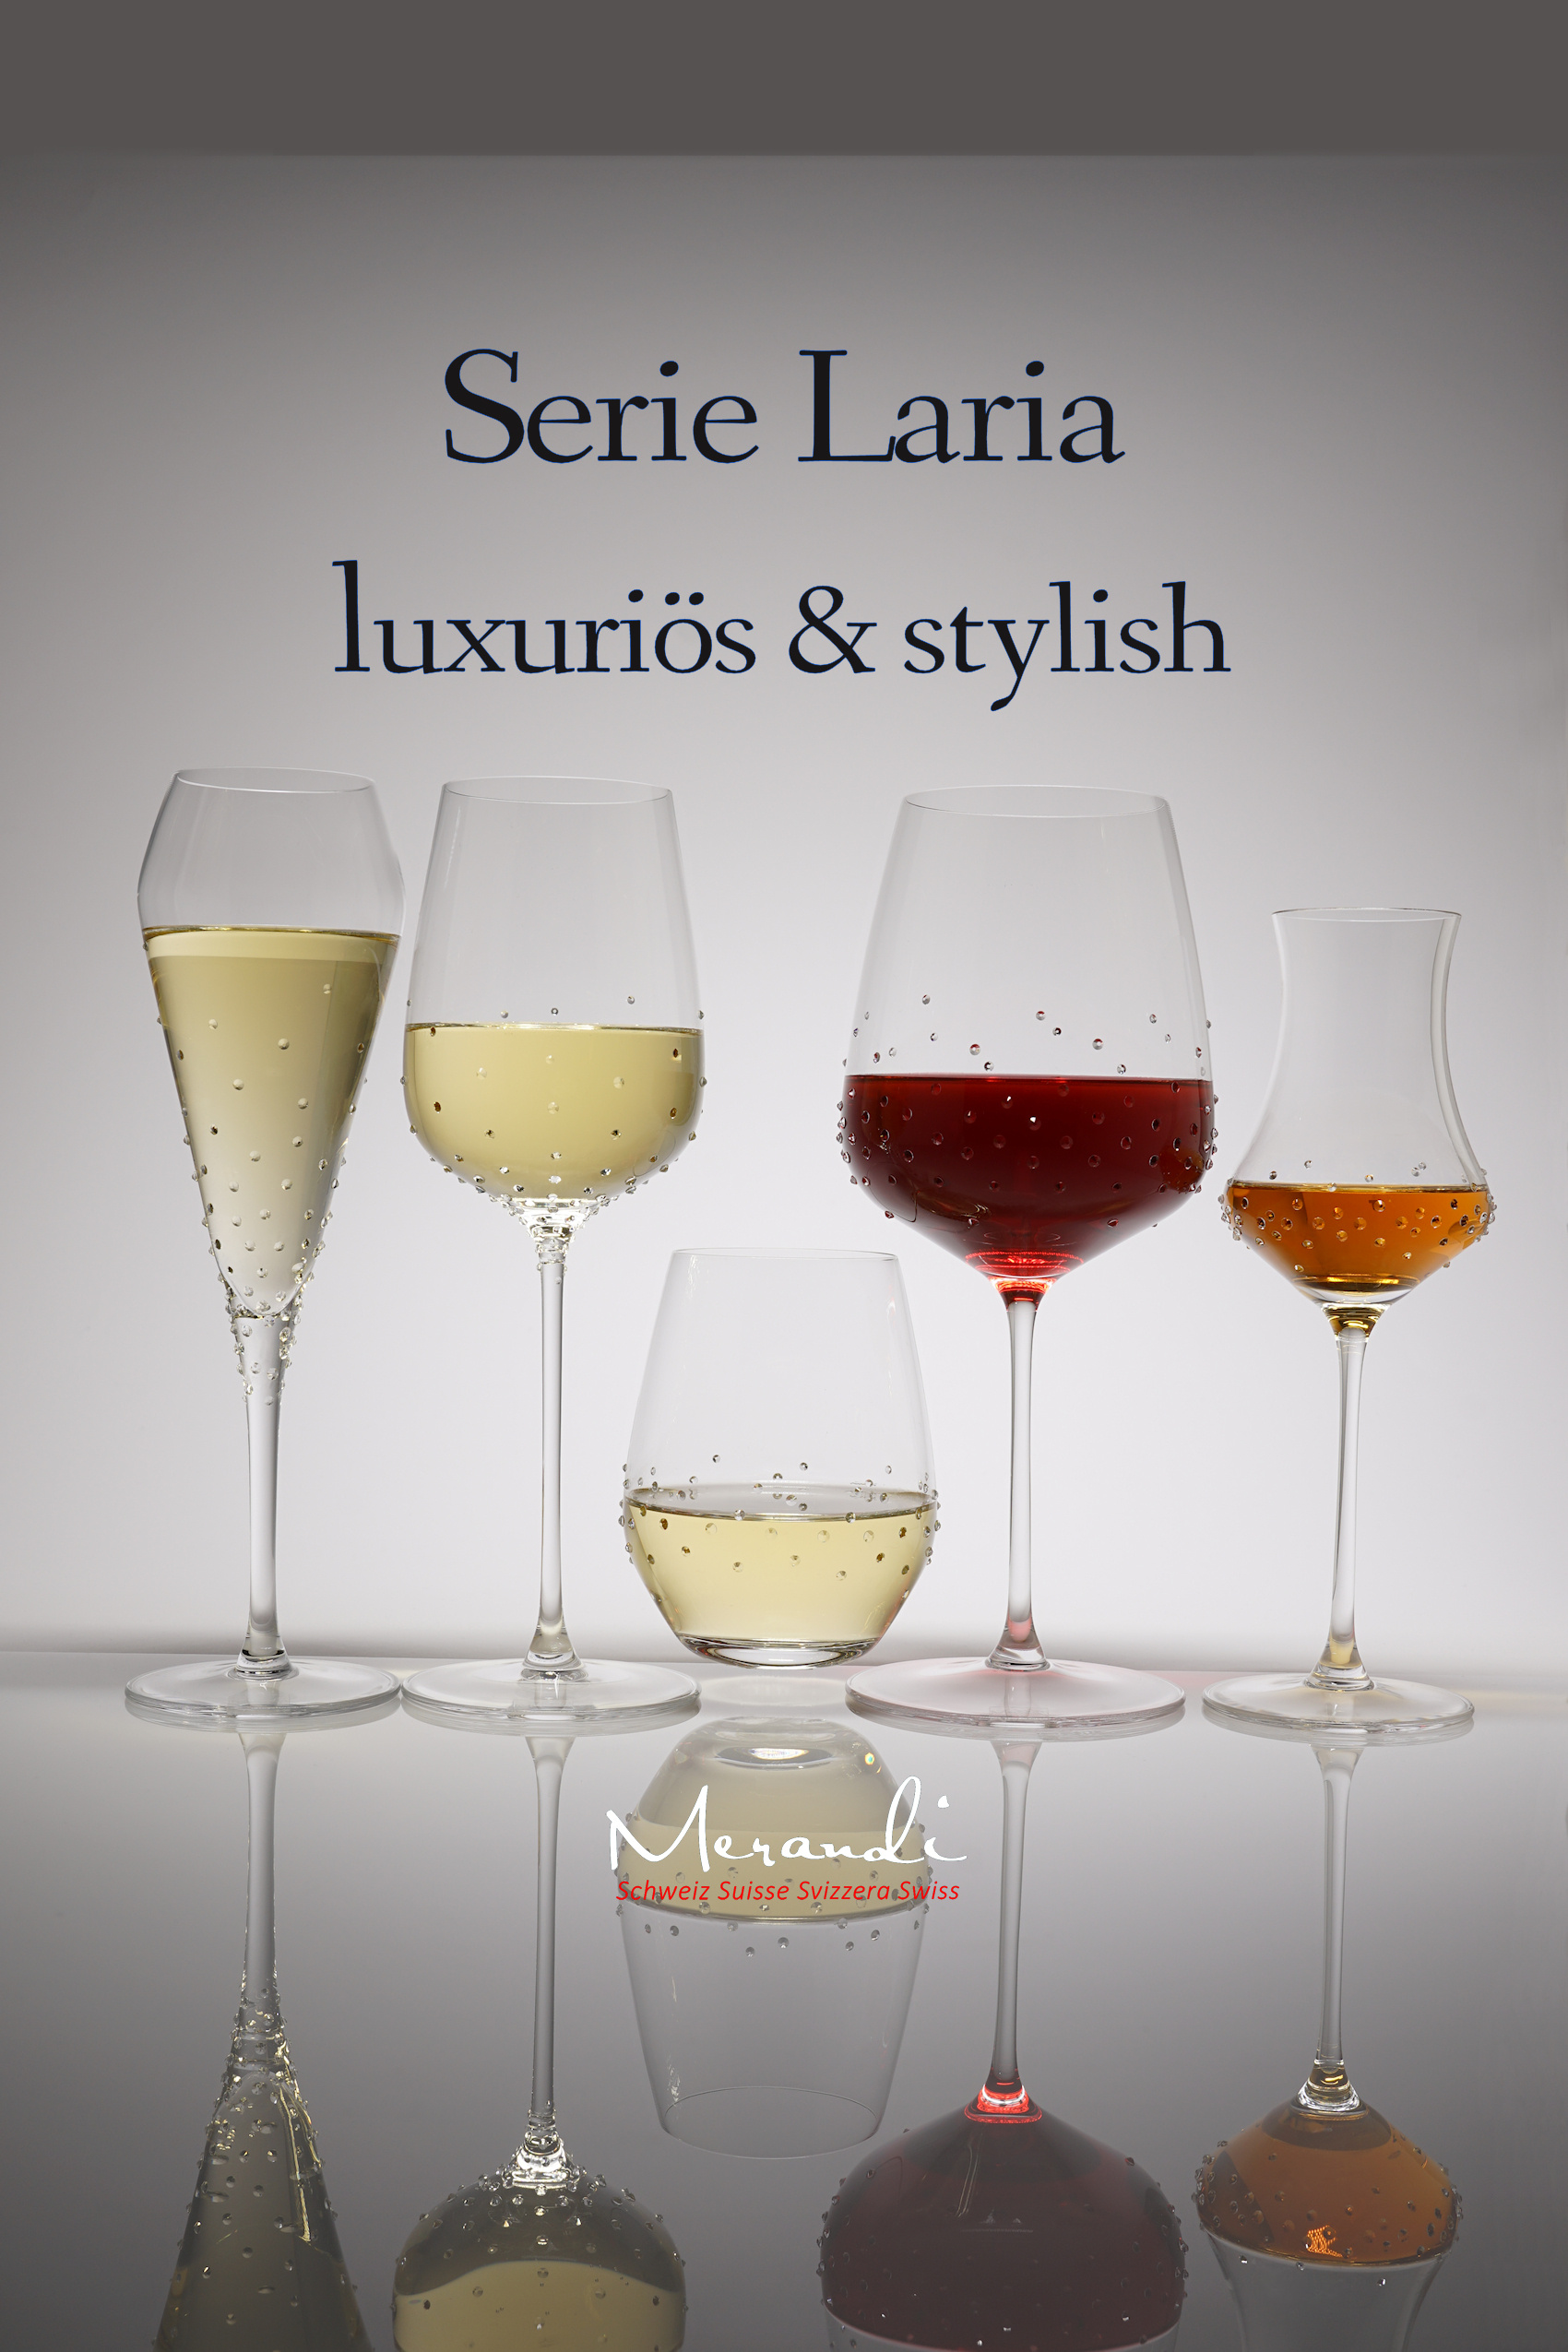 Laria glass series, Merandi Switzerland, Spiegelau® glasses refined with Swarovski® crystals